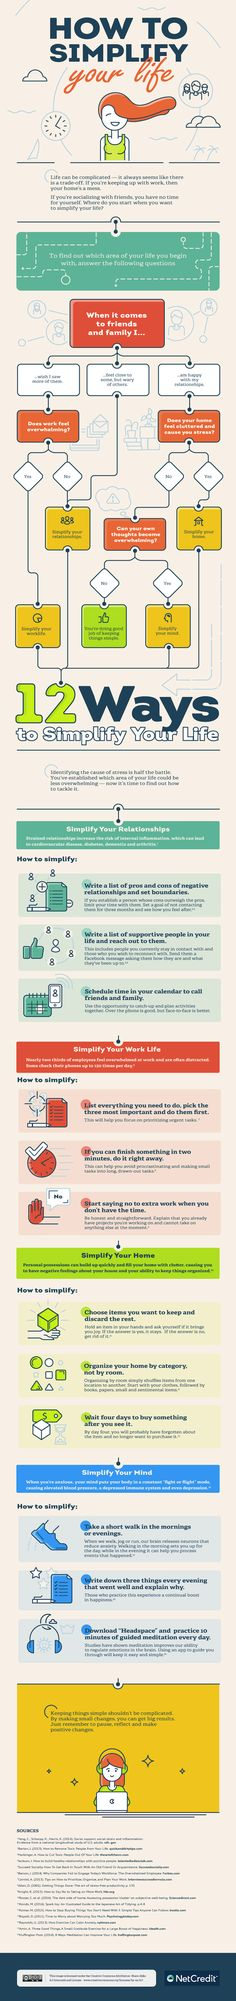 Infographic: How To Simplify Your Life - DesignTAXI.com